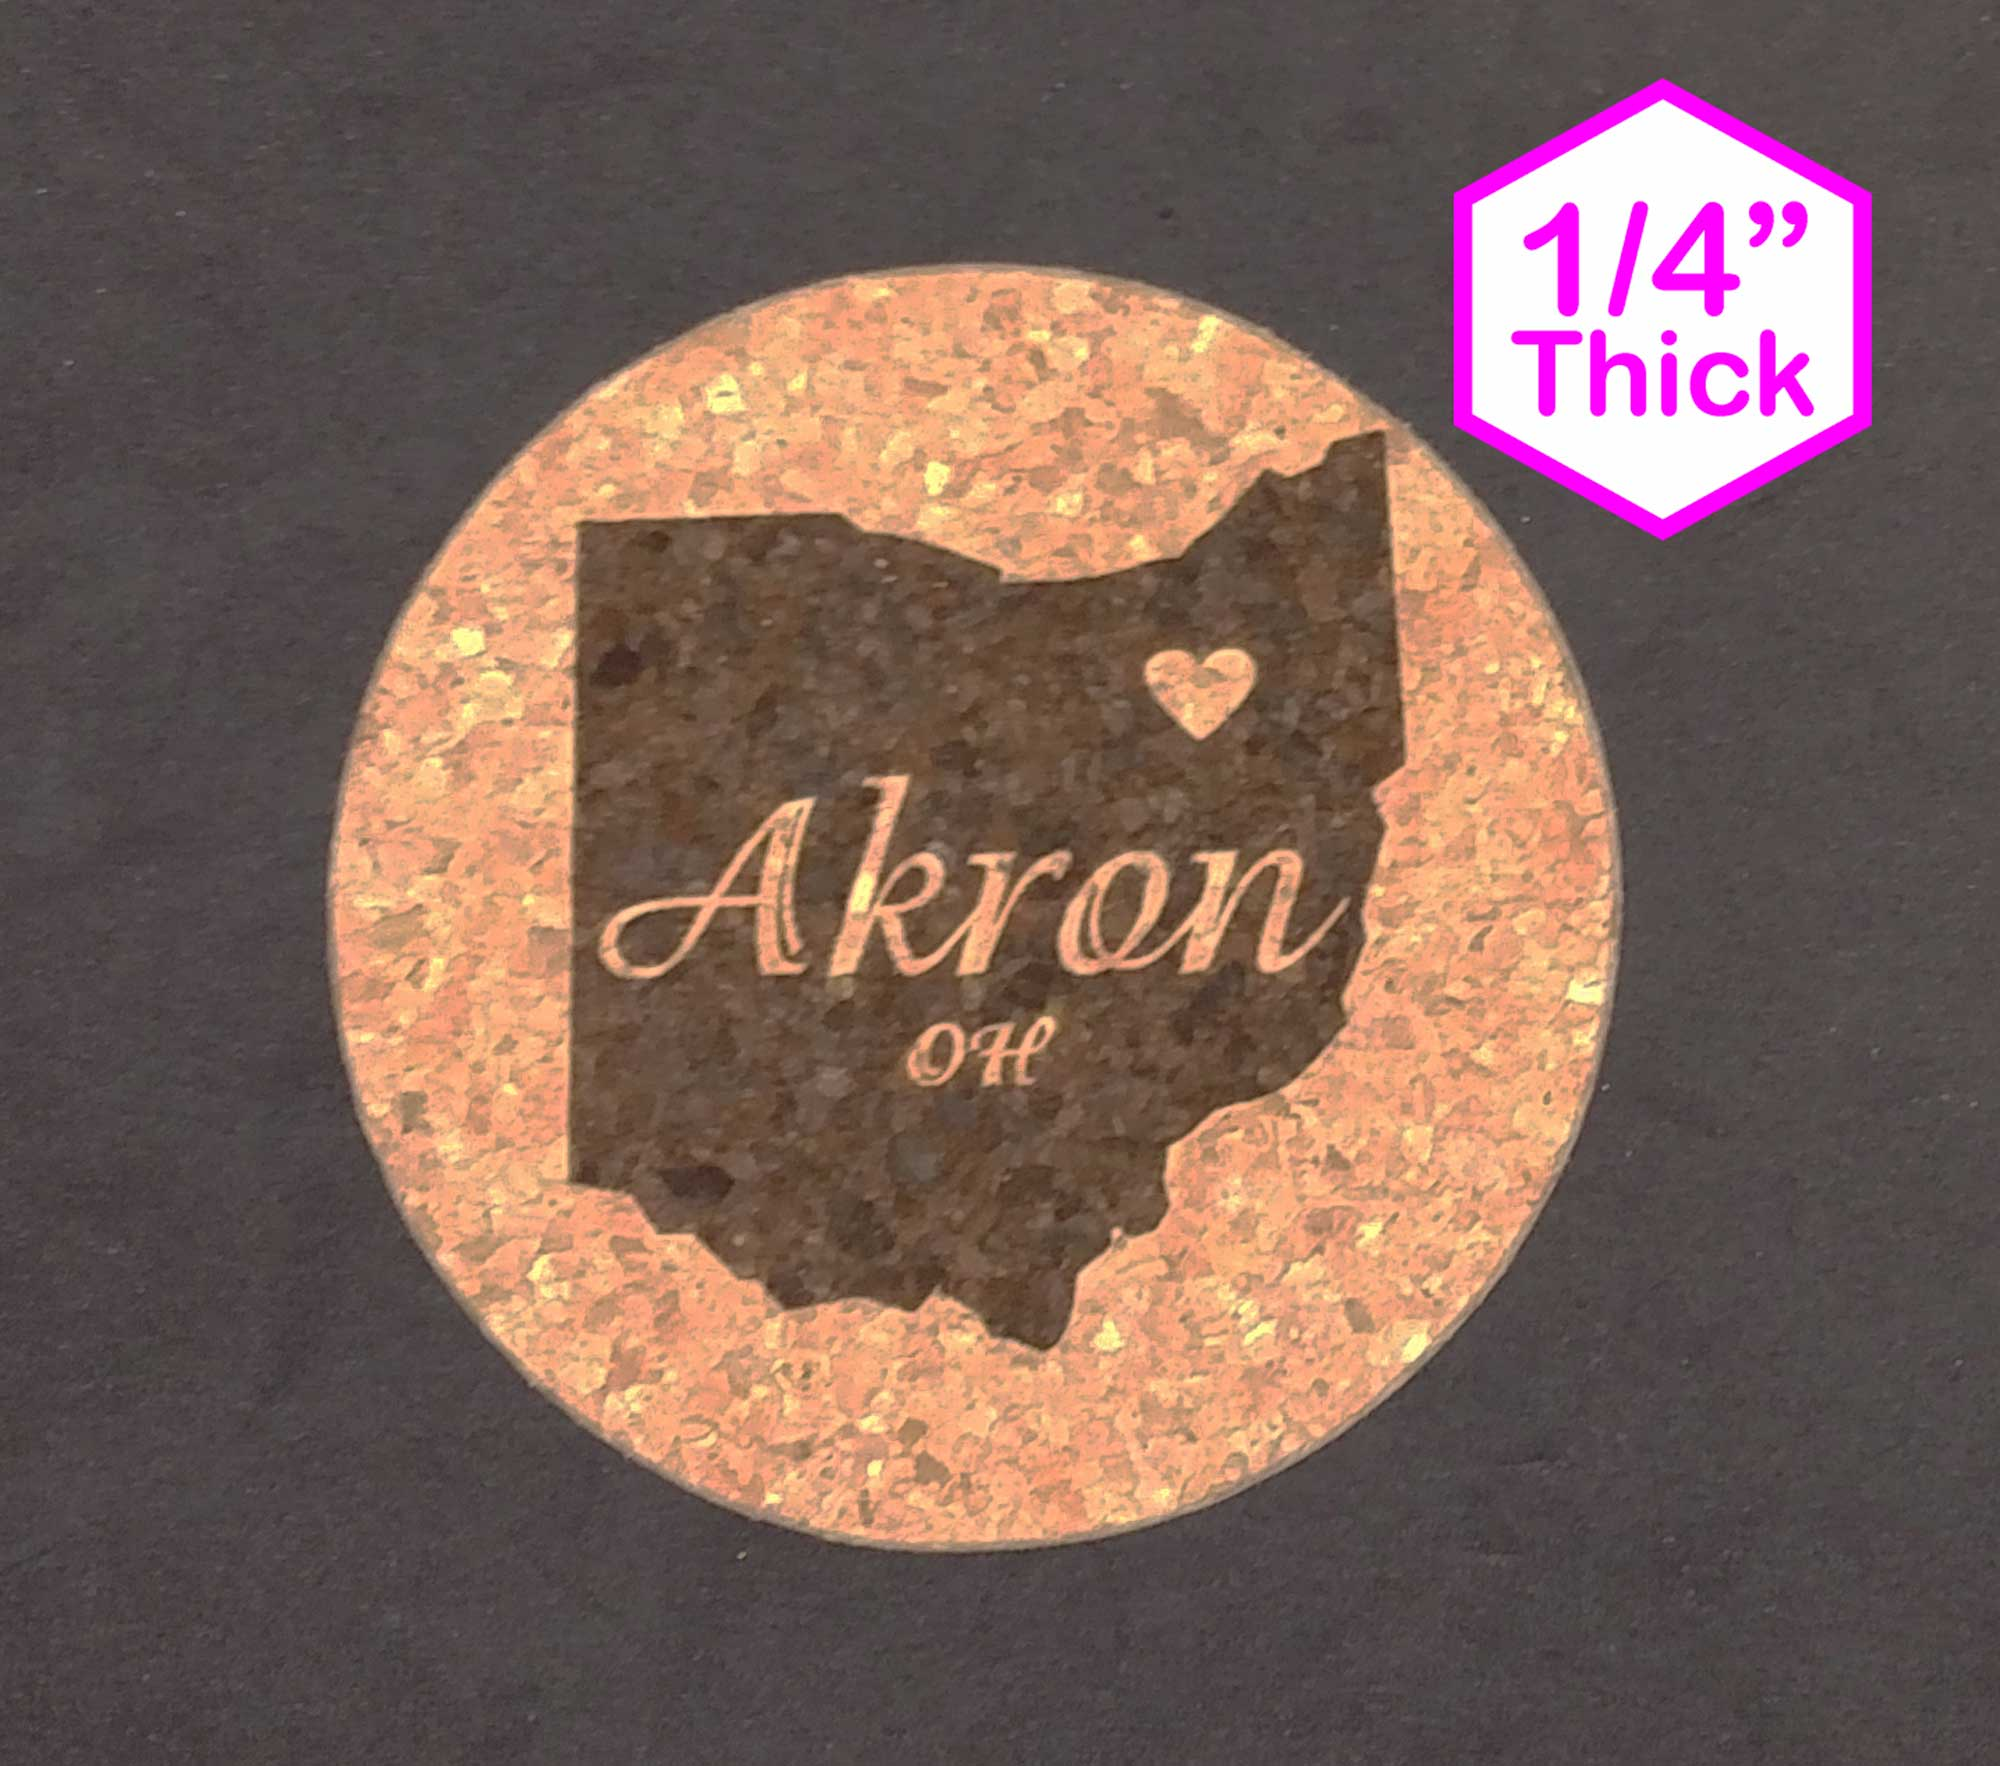 "Akron Ohio 4"" x 4"" Cork Coasters"